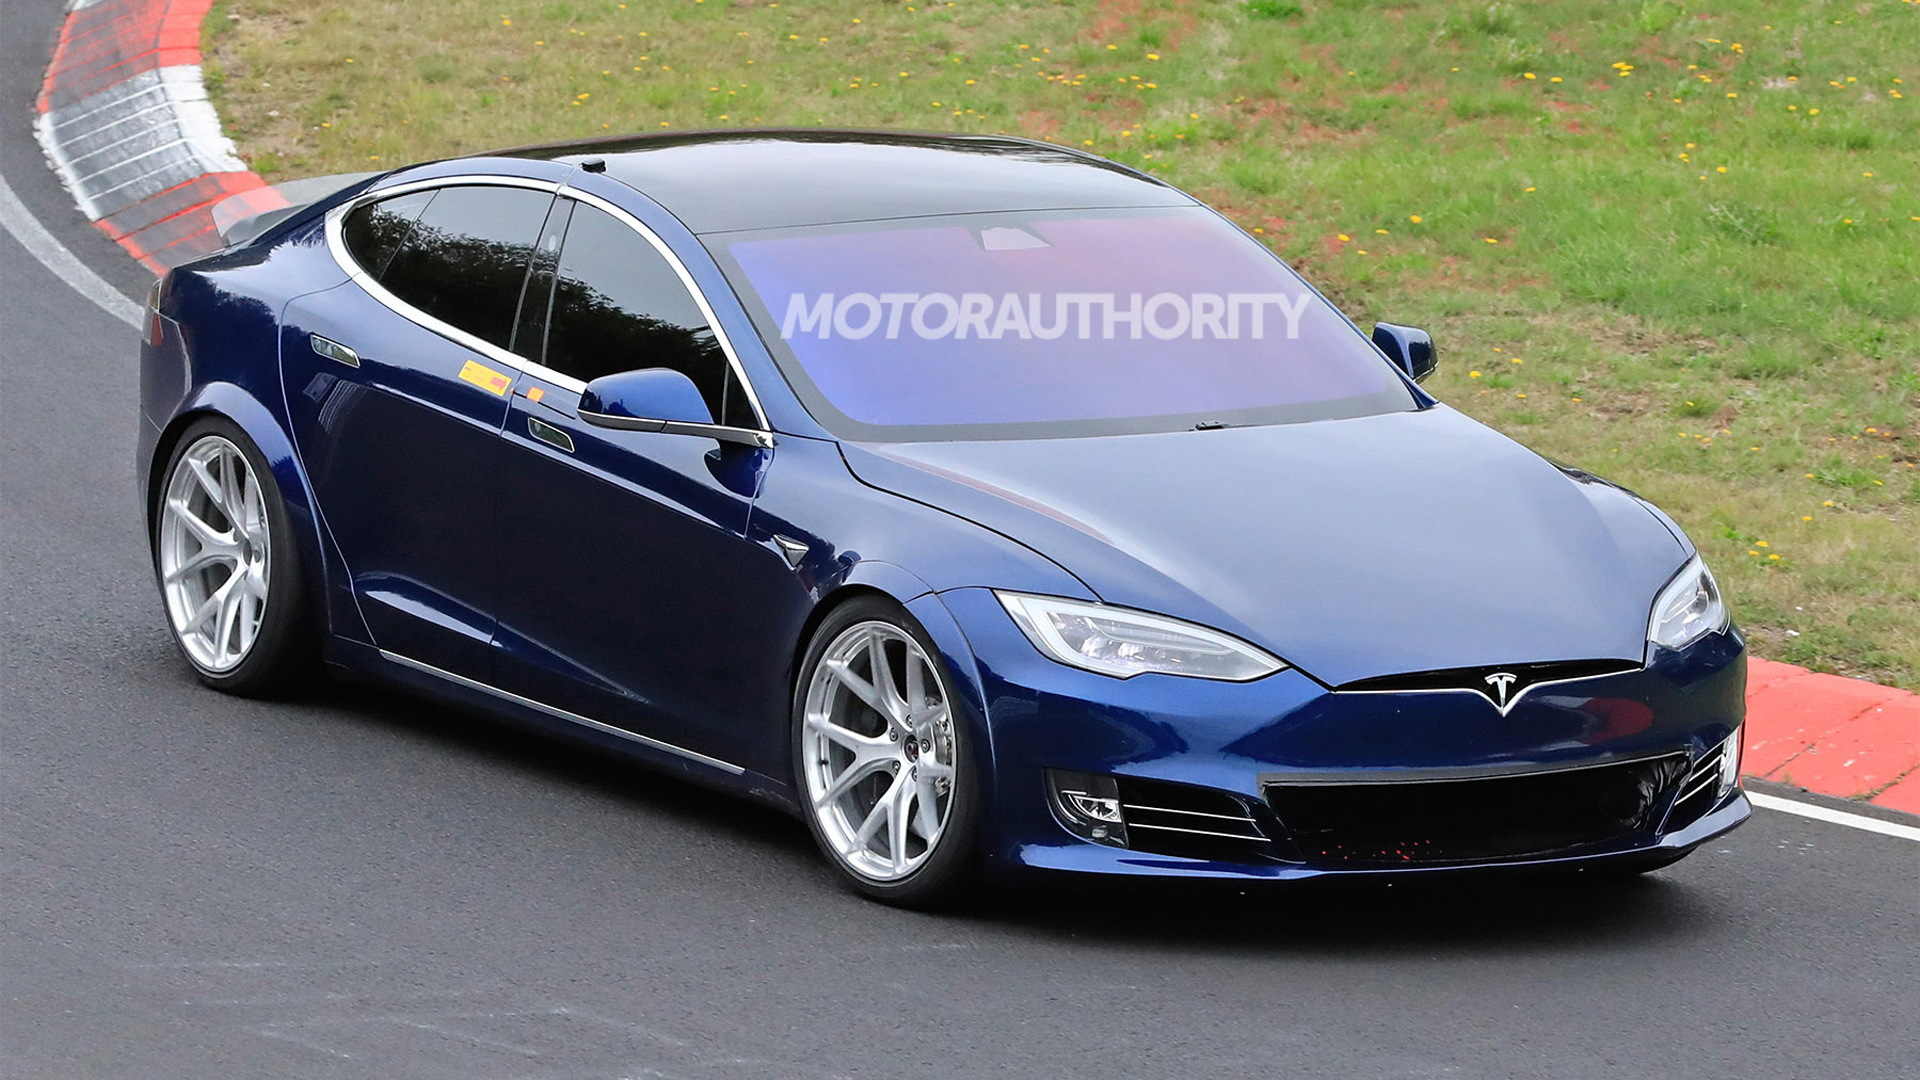 Tesla Model S Plaid spy shots - Photo credit: S. Baldauf/SB-Medien